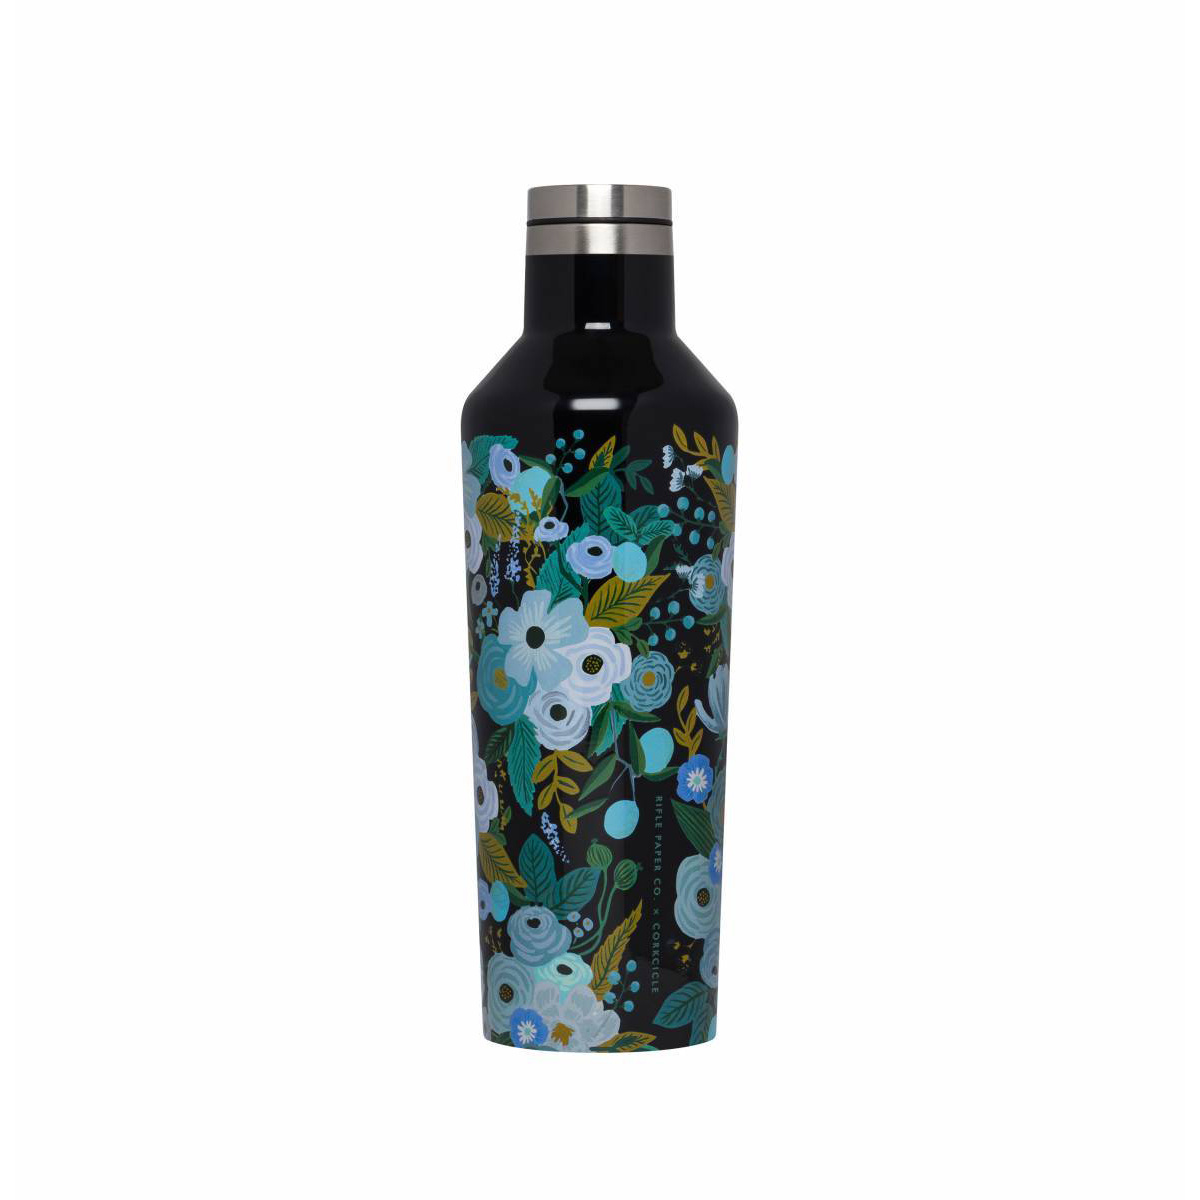 Corkcicle - CO Corkcicle x Rifle Paper Co Garden Party Canteen